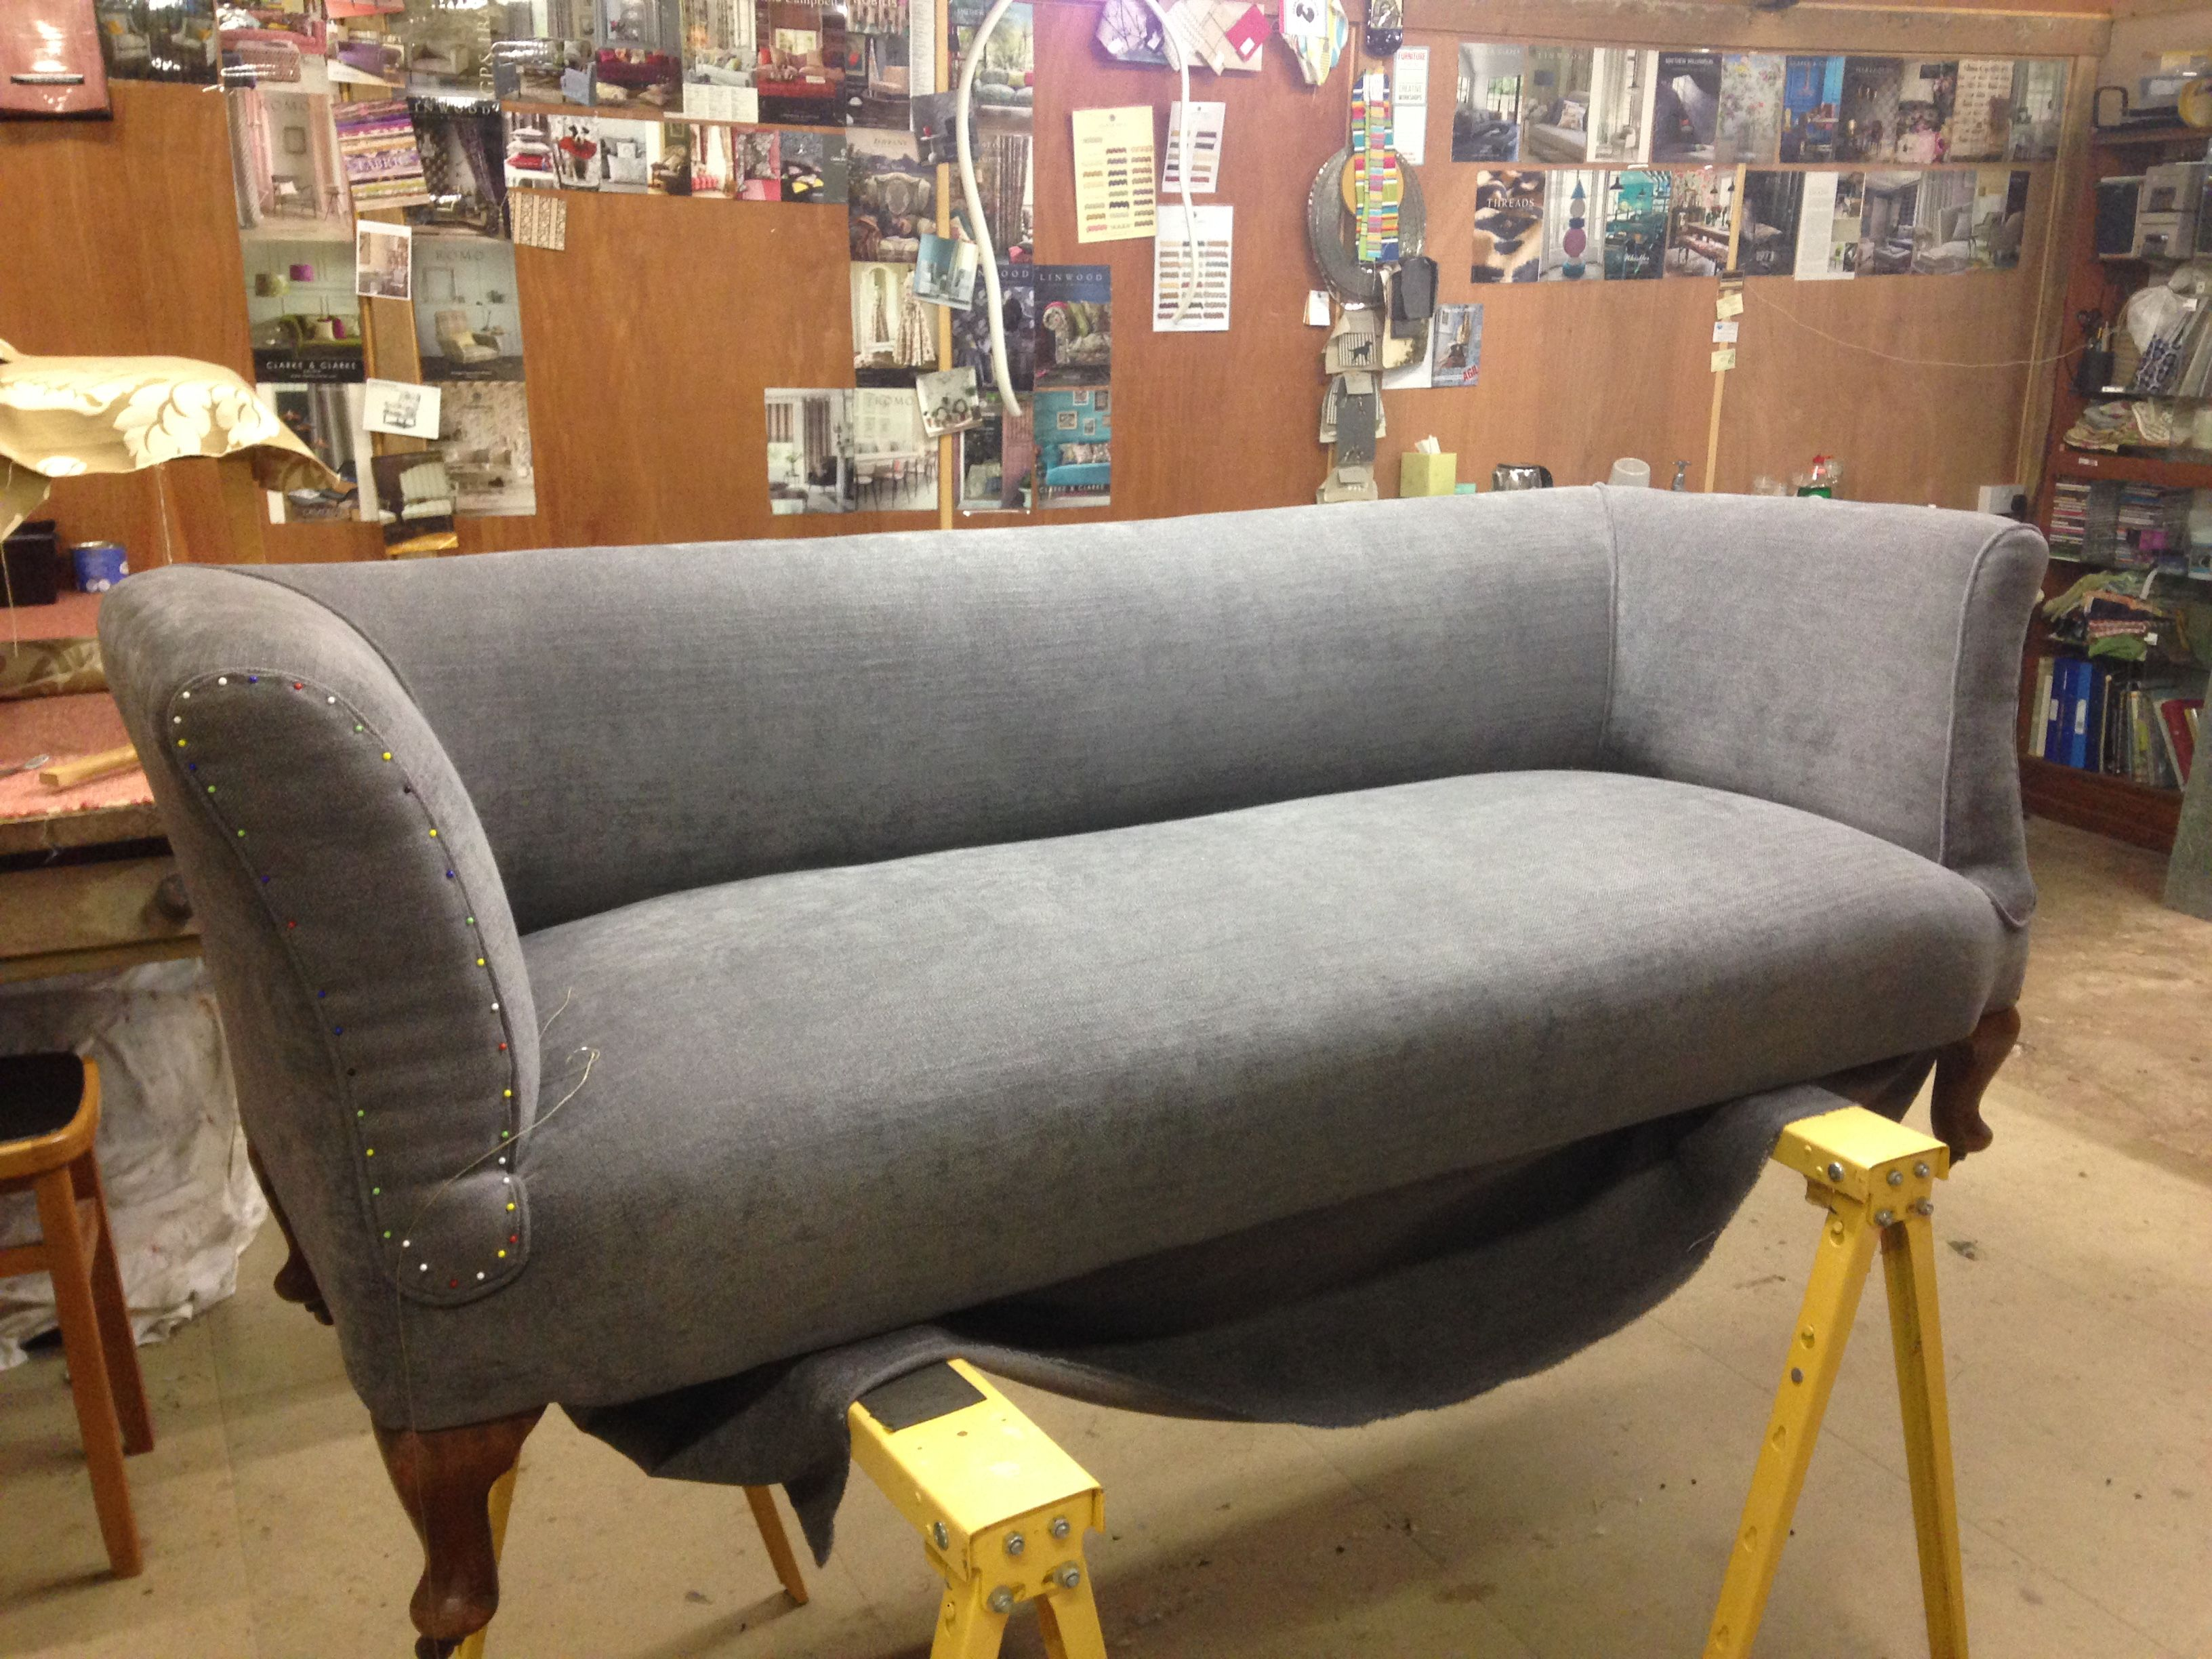 Weekend Course Upholstery, Three seater sofa, Chairs for